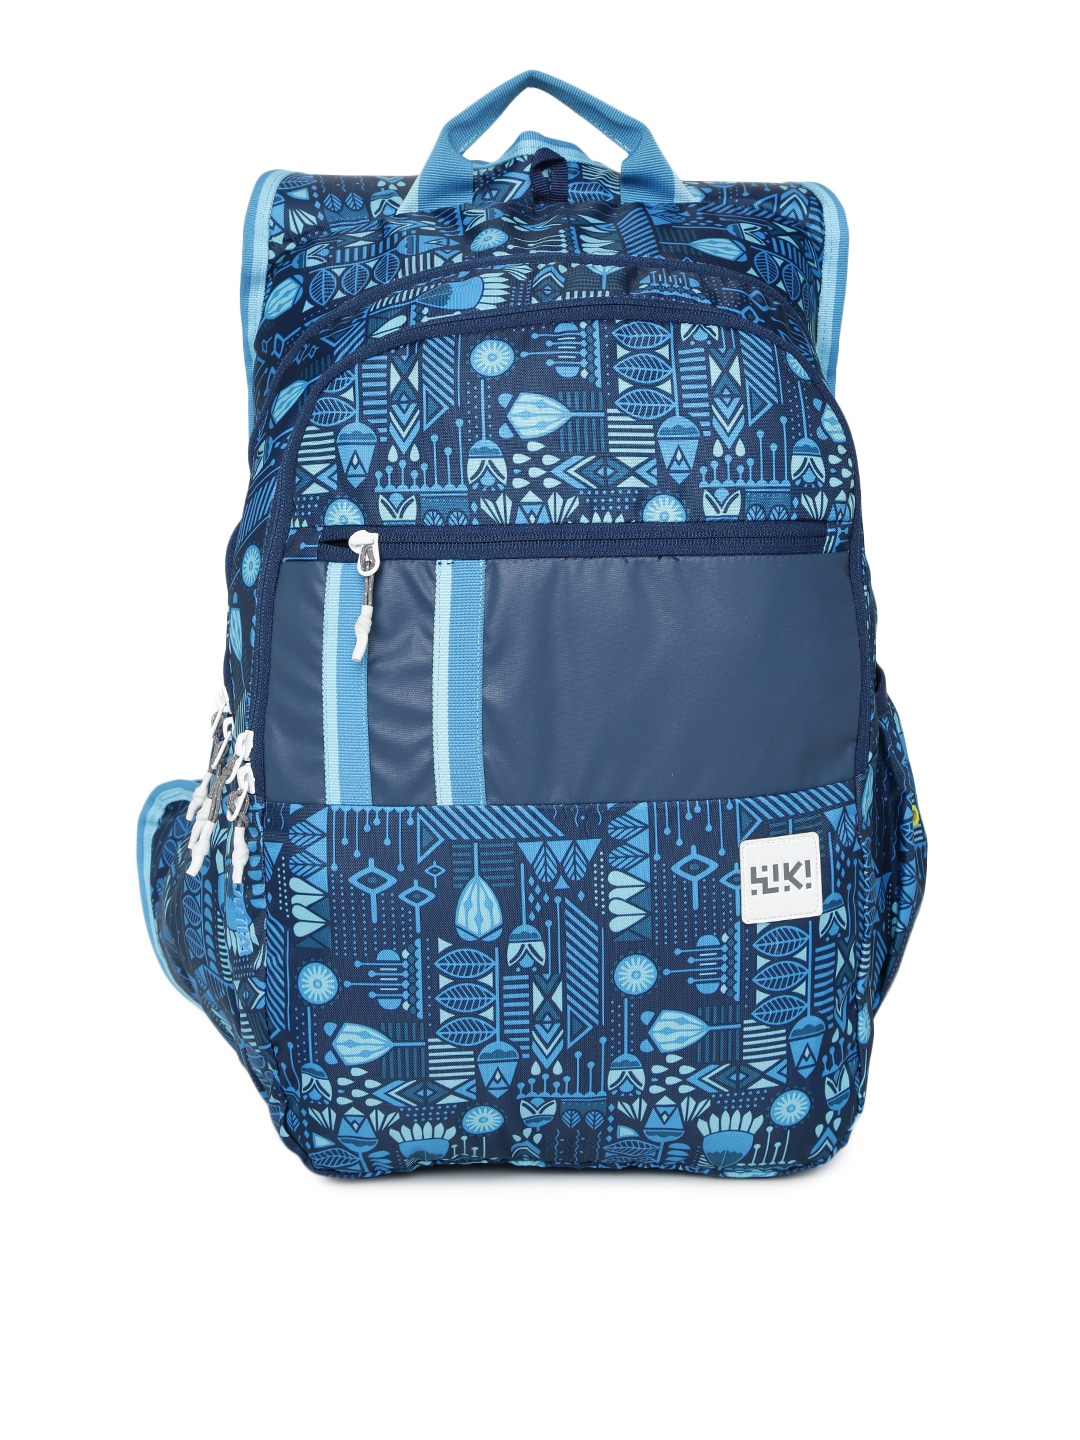 a31038c1e4d Wildcraft. Rs. 1699. Girls Graphic Backpack. More Backpacks by YK Disney  More Pink ...